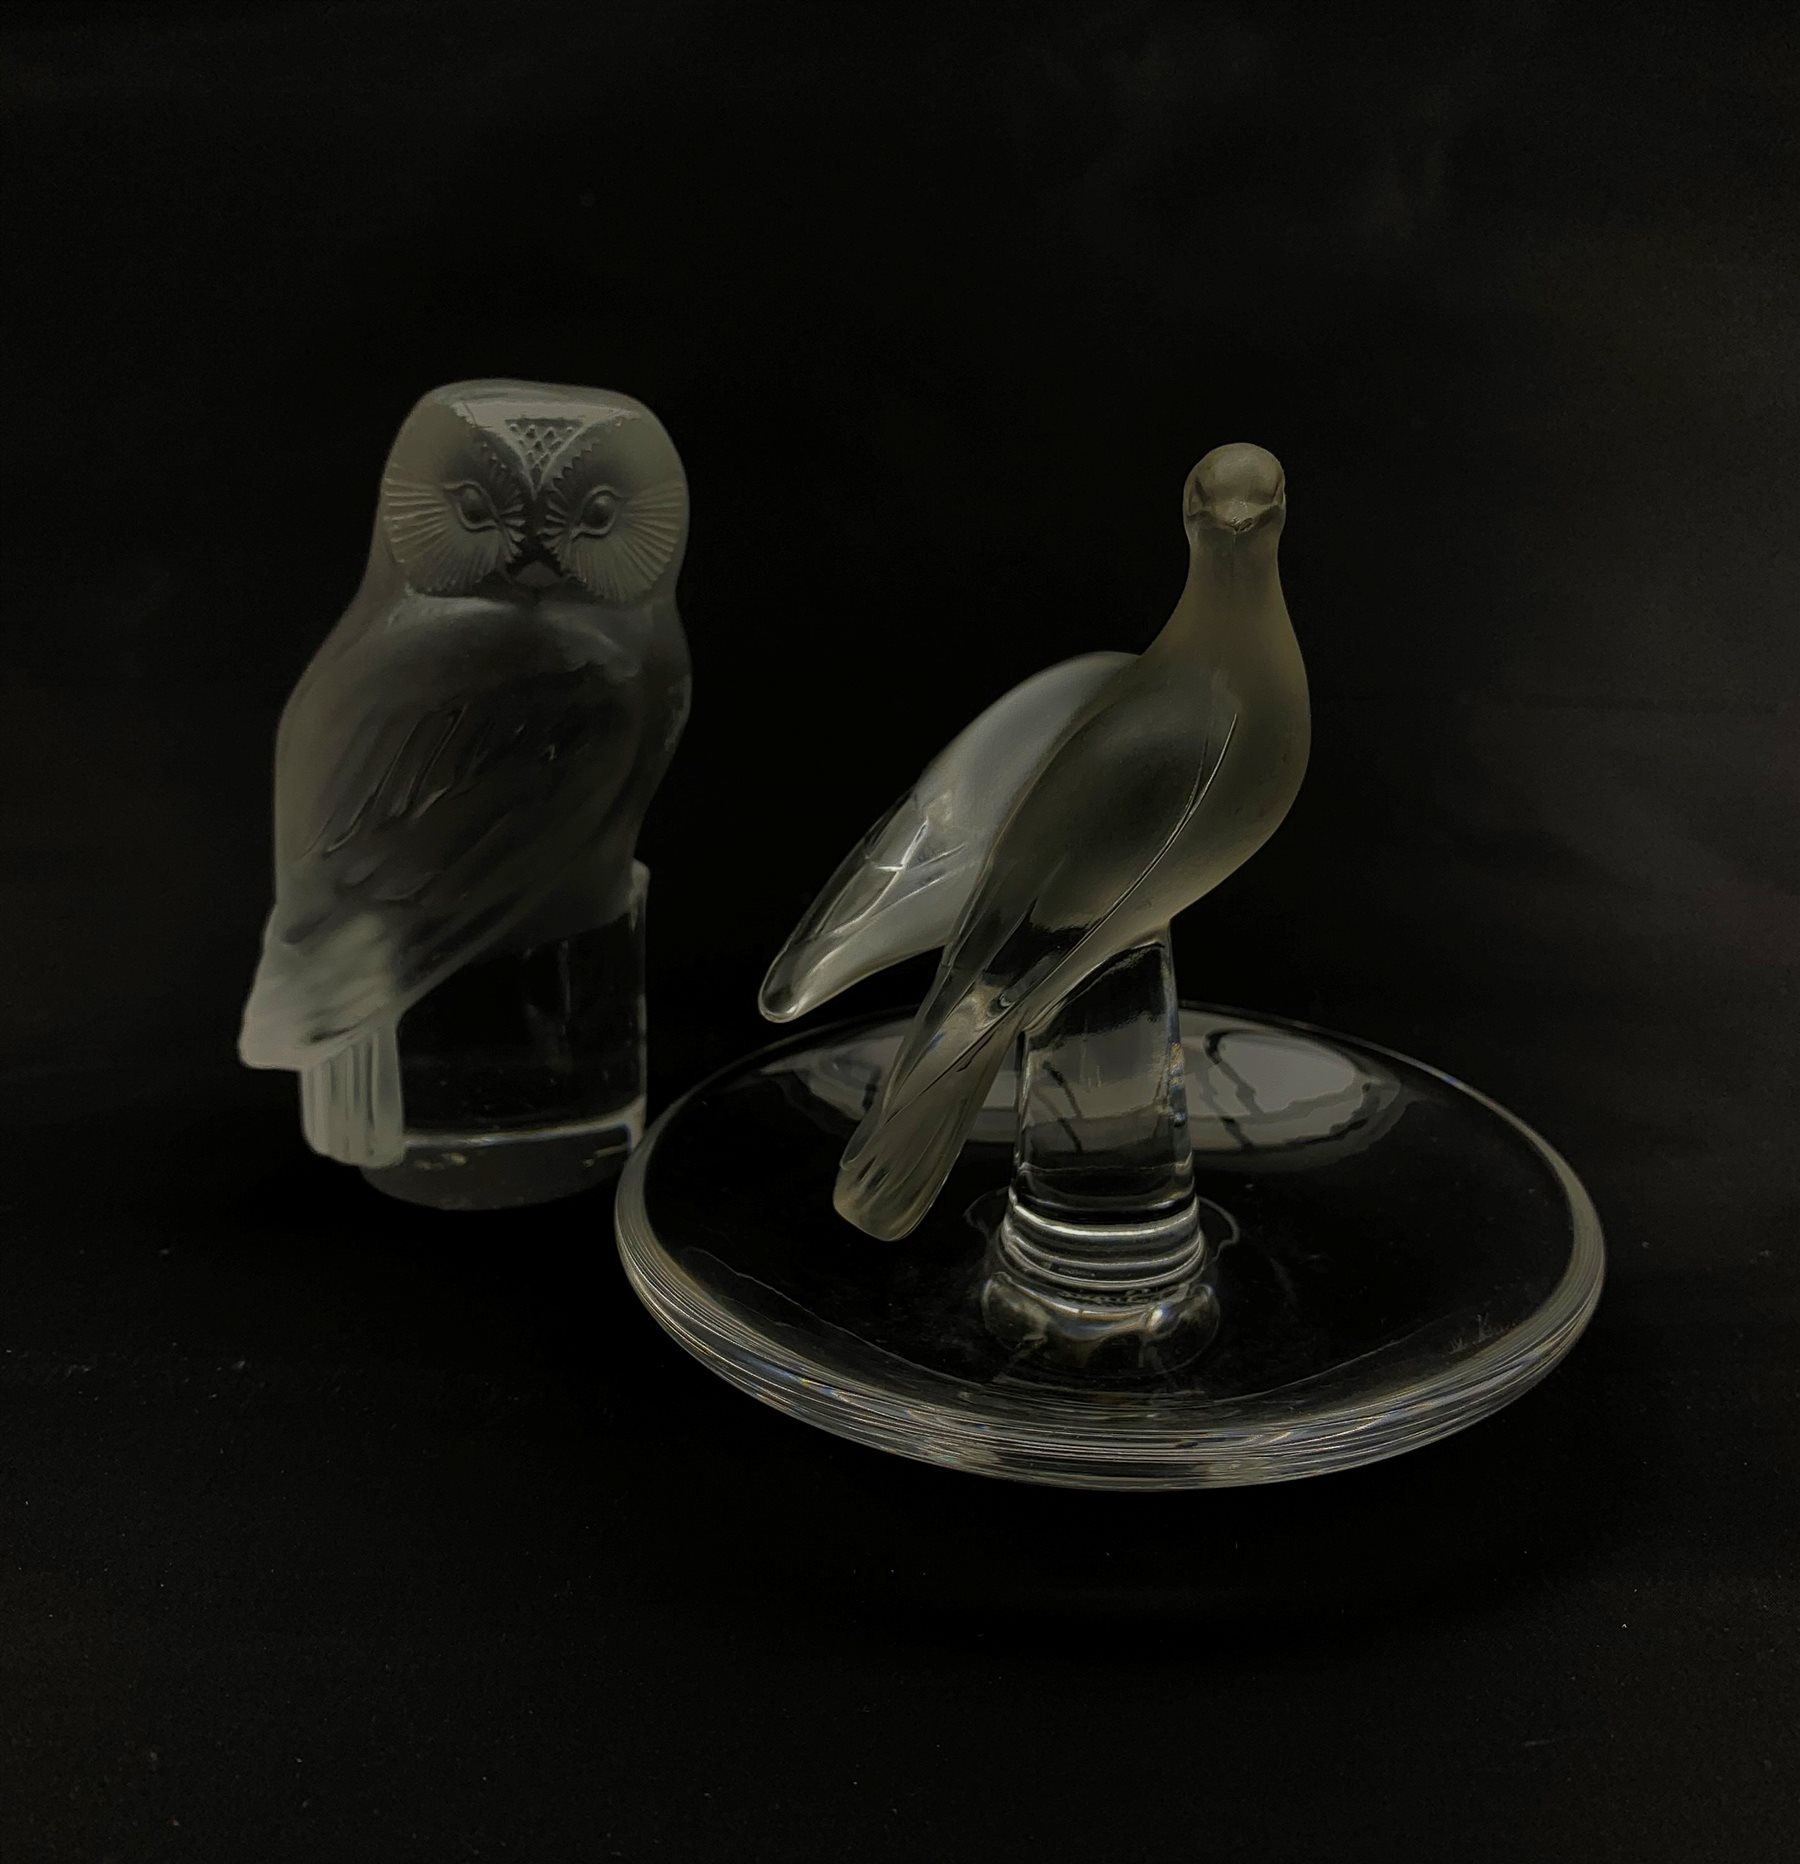 Lalique frosted glass paperweight modelled as an Owl, together with a Lalique glass pin dish, surmou